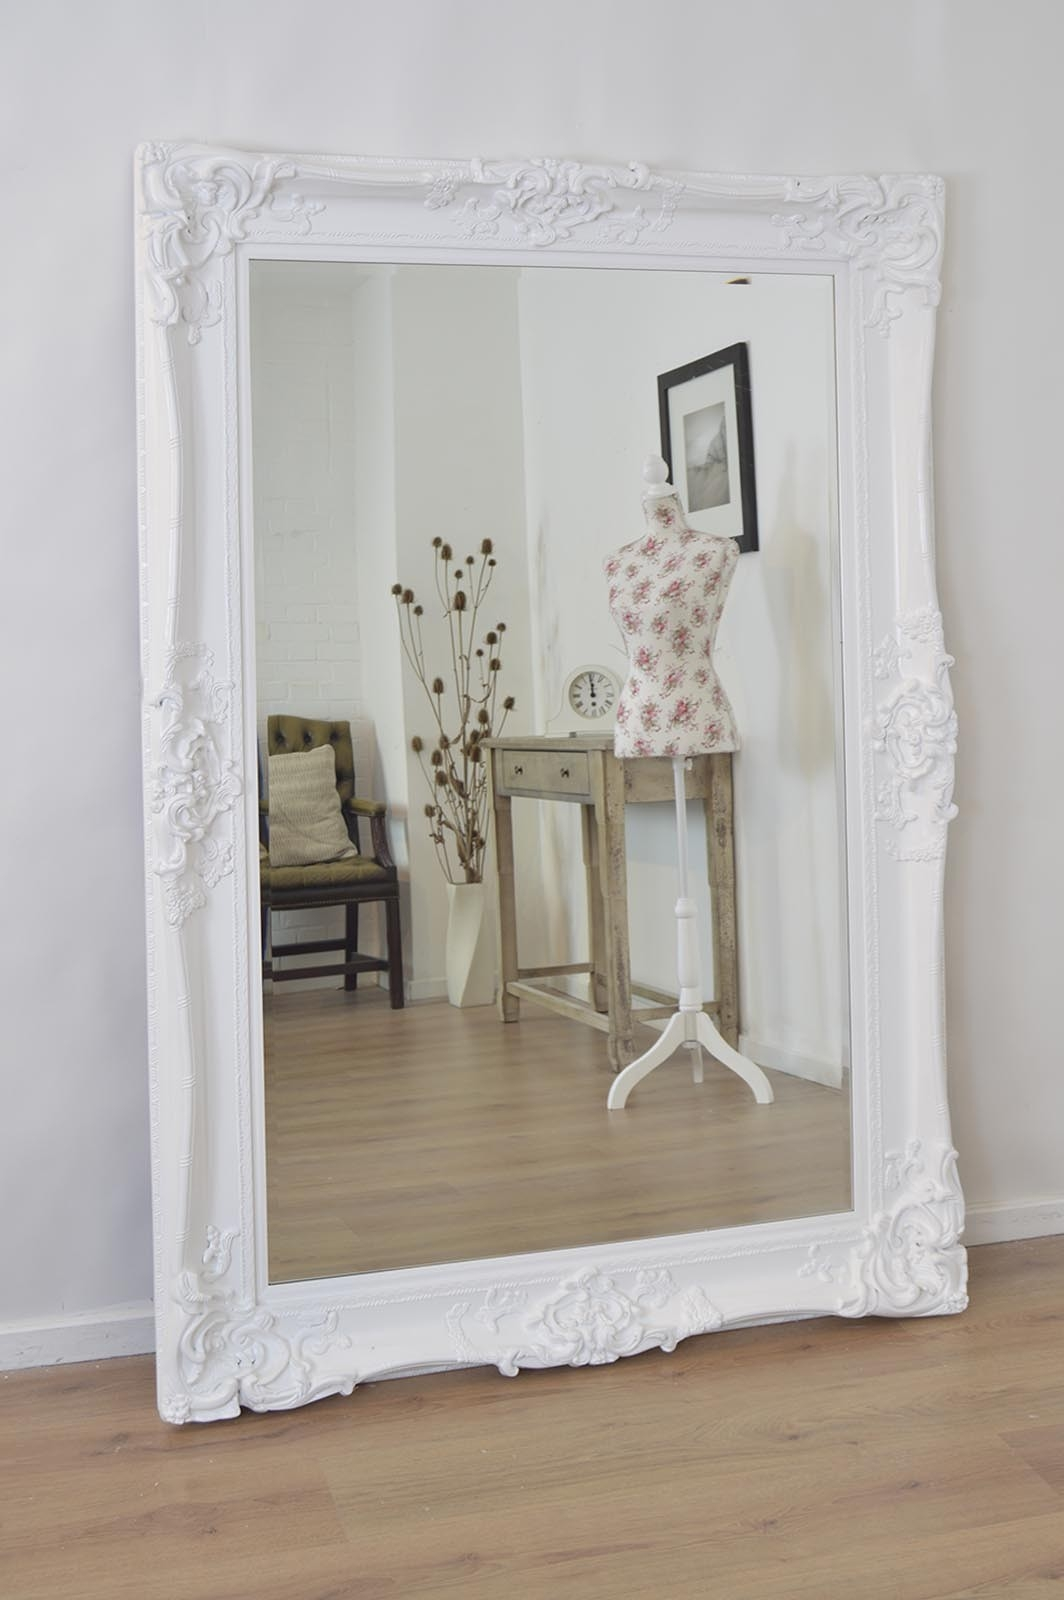 Large White Antique Shab Chic Ornate Wall Mirror 6ft X 4ft With Regard To Large White Ornate Mirror (Image 10 of 15)